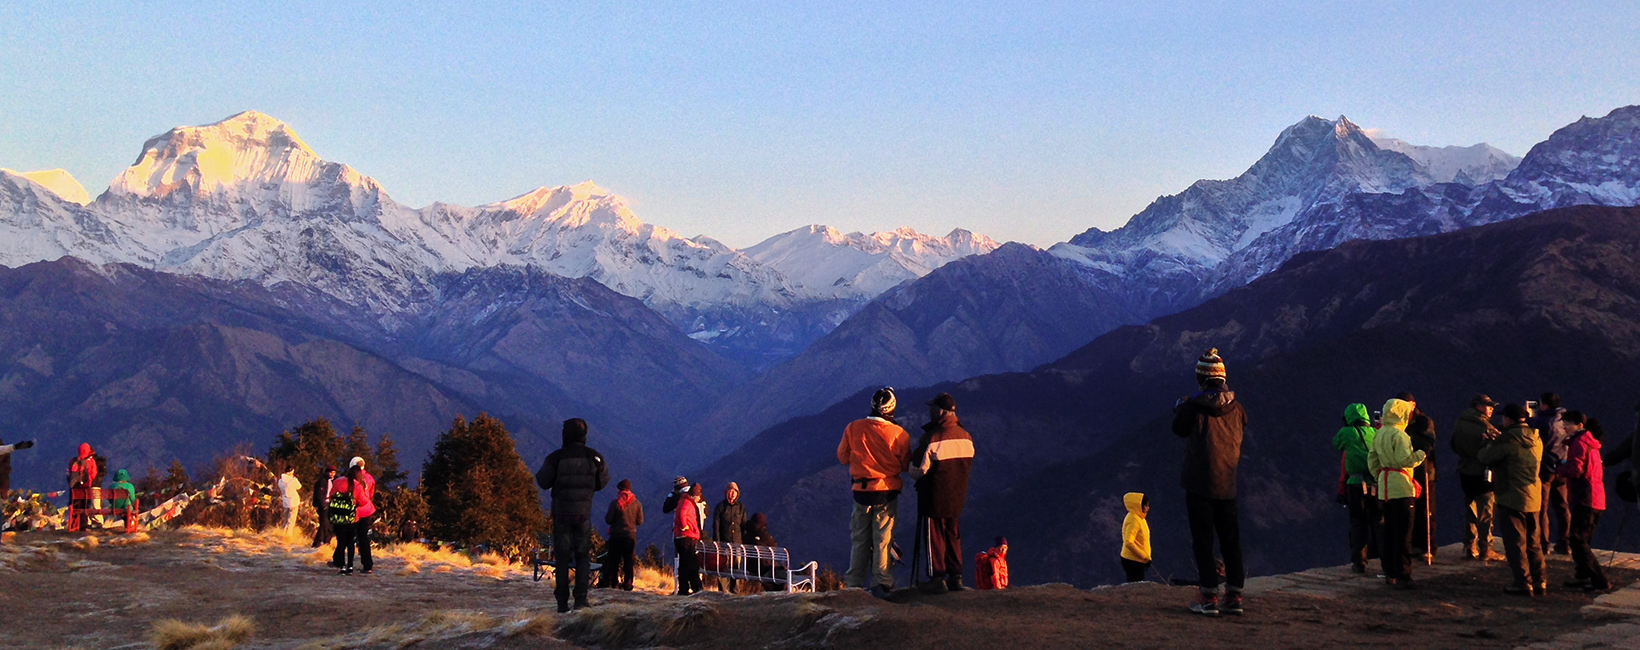 Gap Year Planner in the Himalayas | Gap Year Nepal